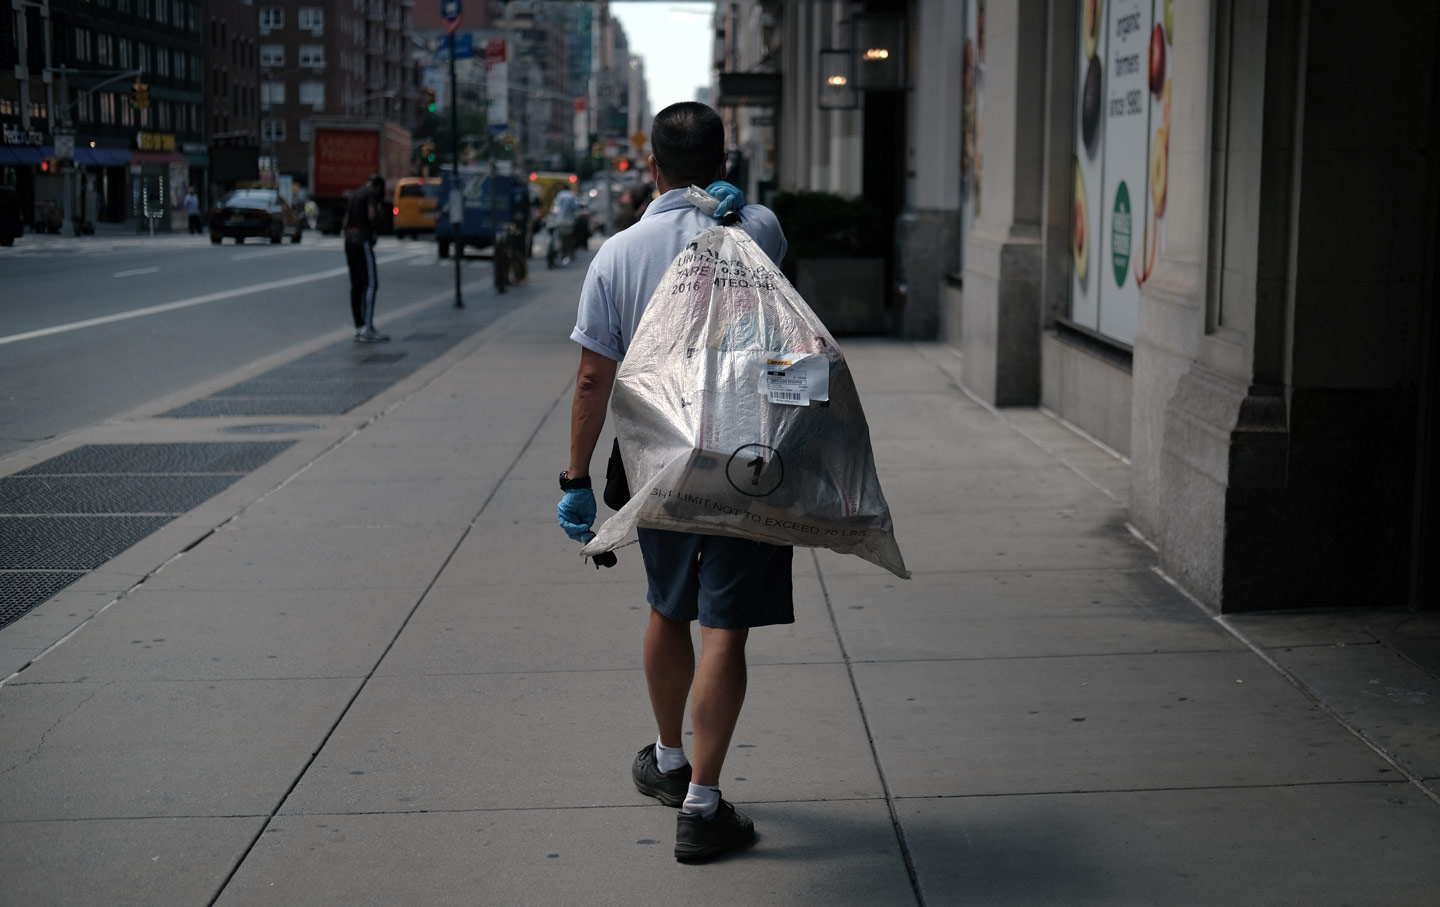 usps-mail-carrier-bag-gty-img